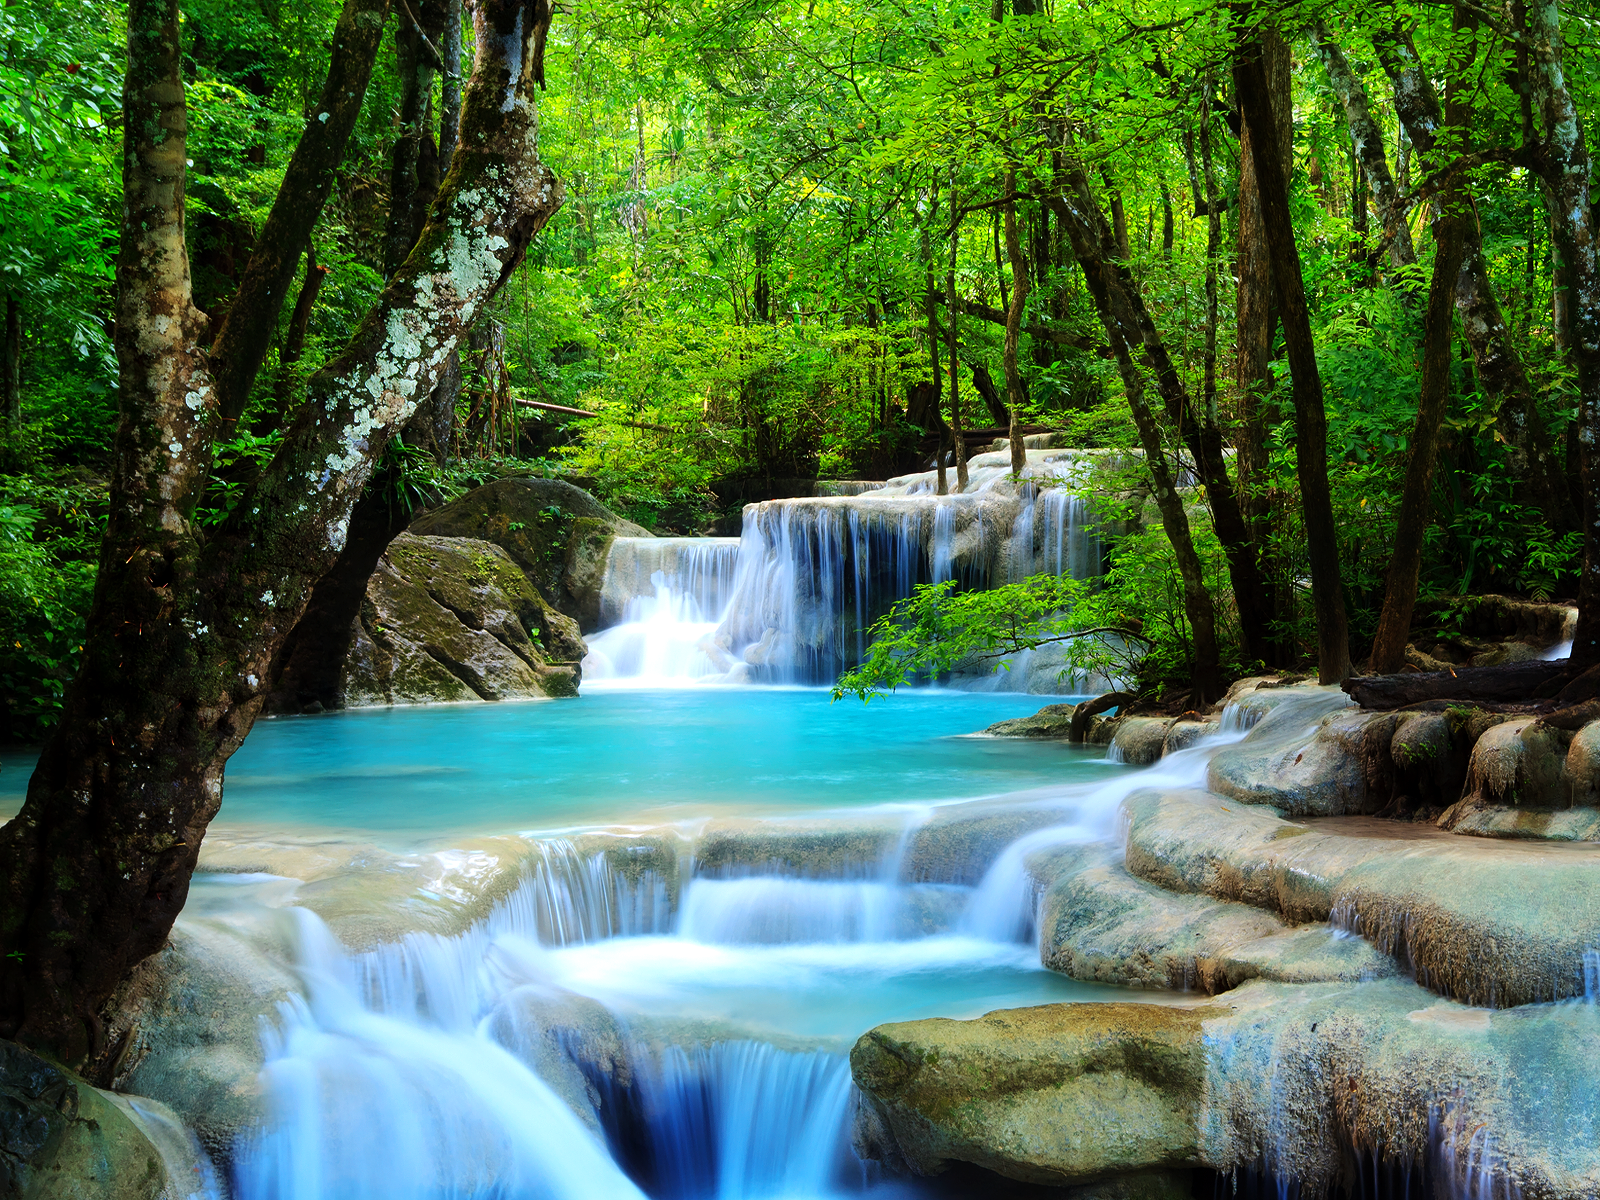 Forest Waterfall wallpaper What We Have Learned From Romney Ryan 1600x1200